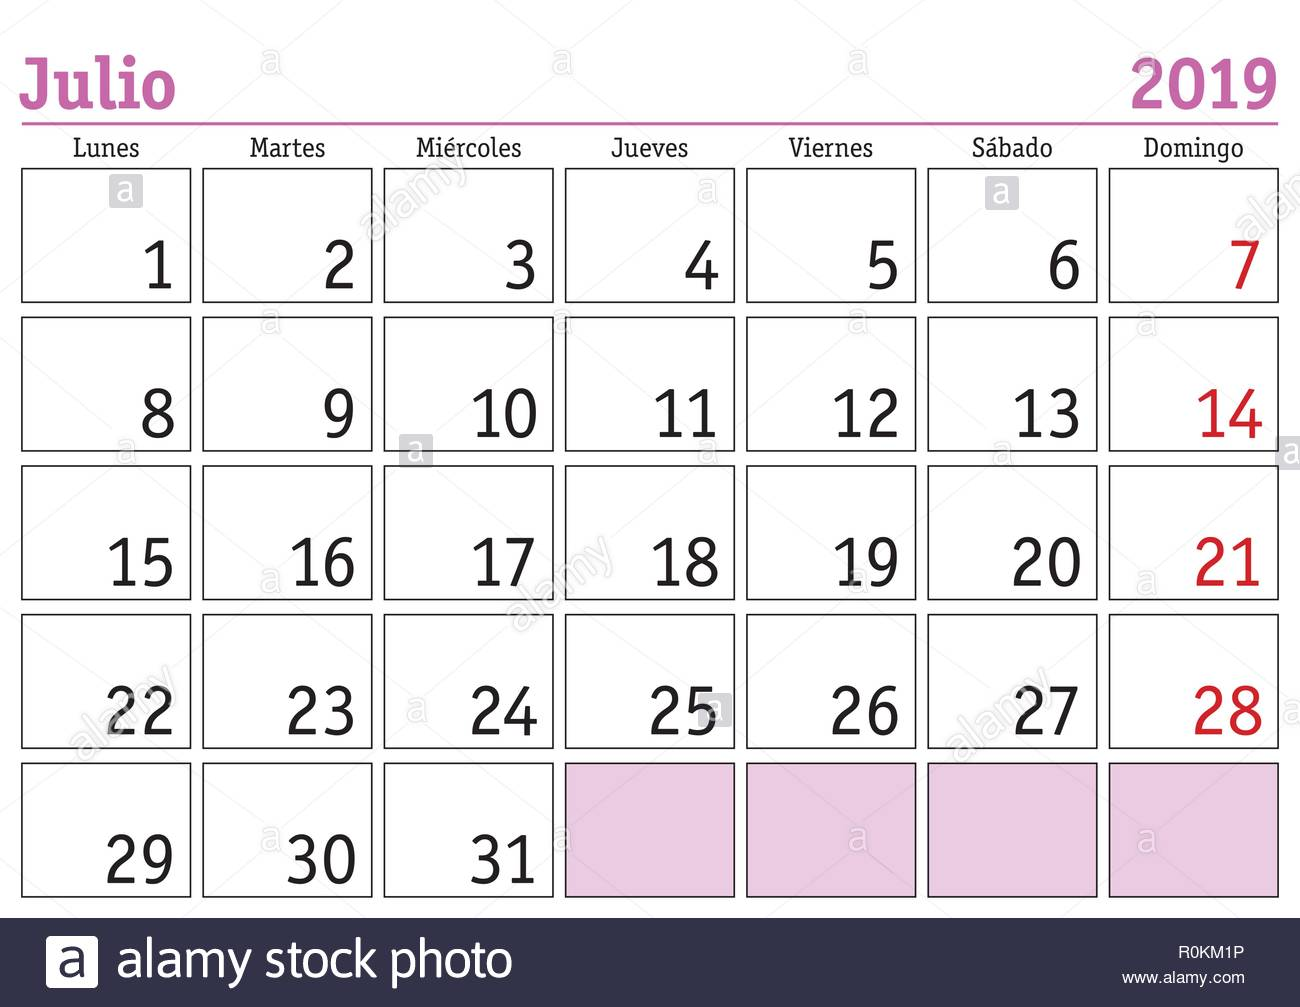 Julio 2019 Calendario.July Month In A Year 2019 Wall Calendar In Spanish Julio 2019